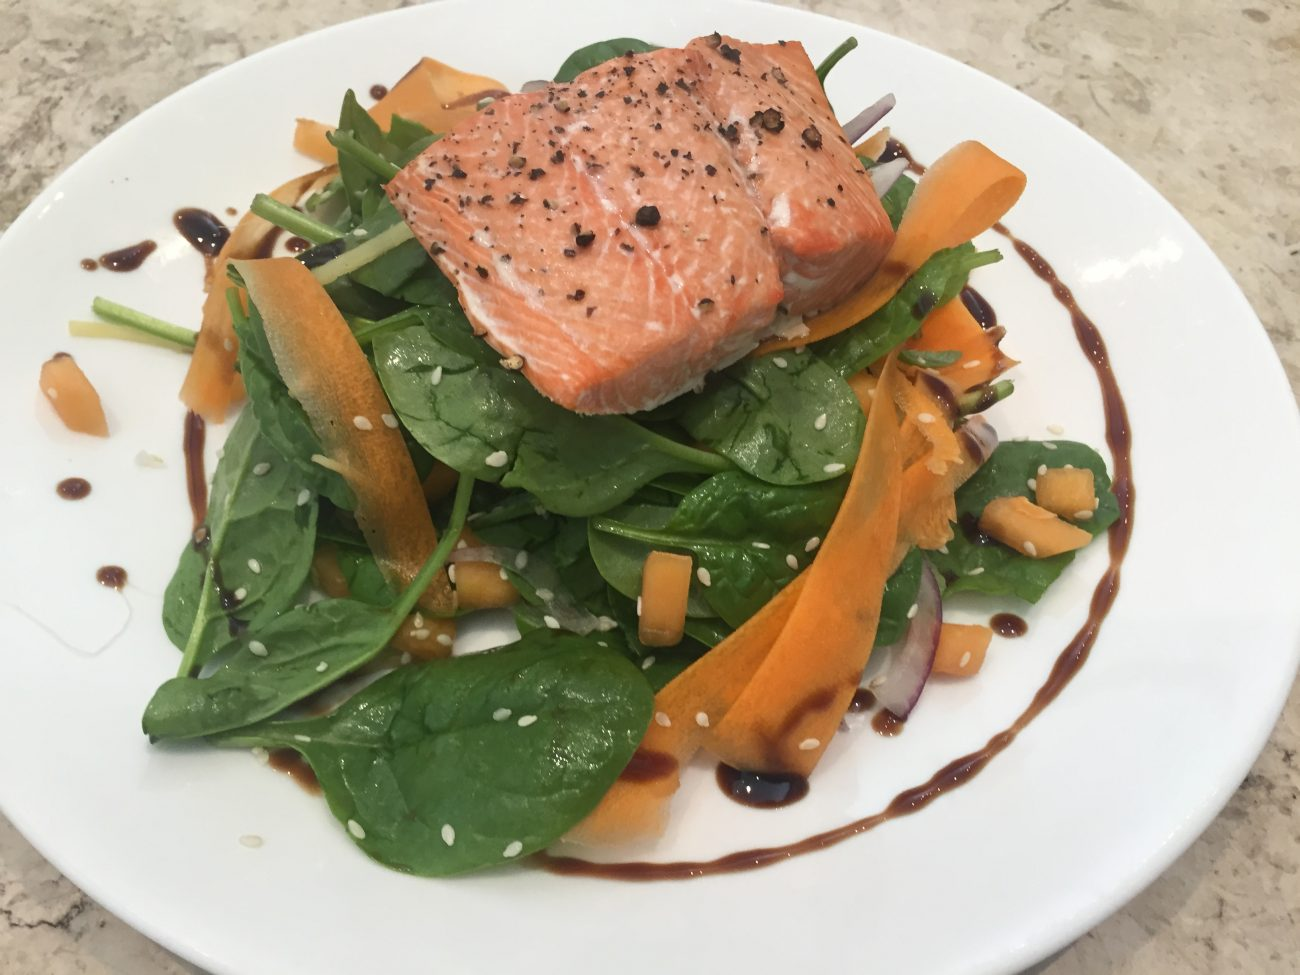 Salmon, Melon and Pickled Ginger Salad